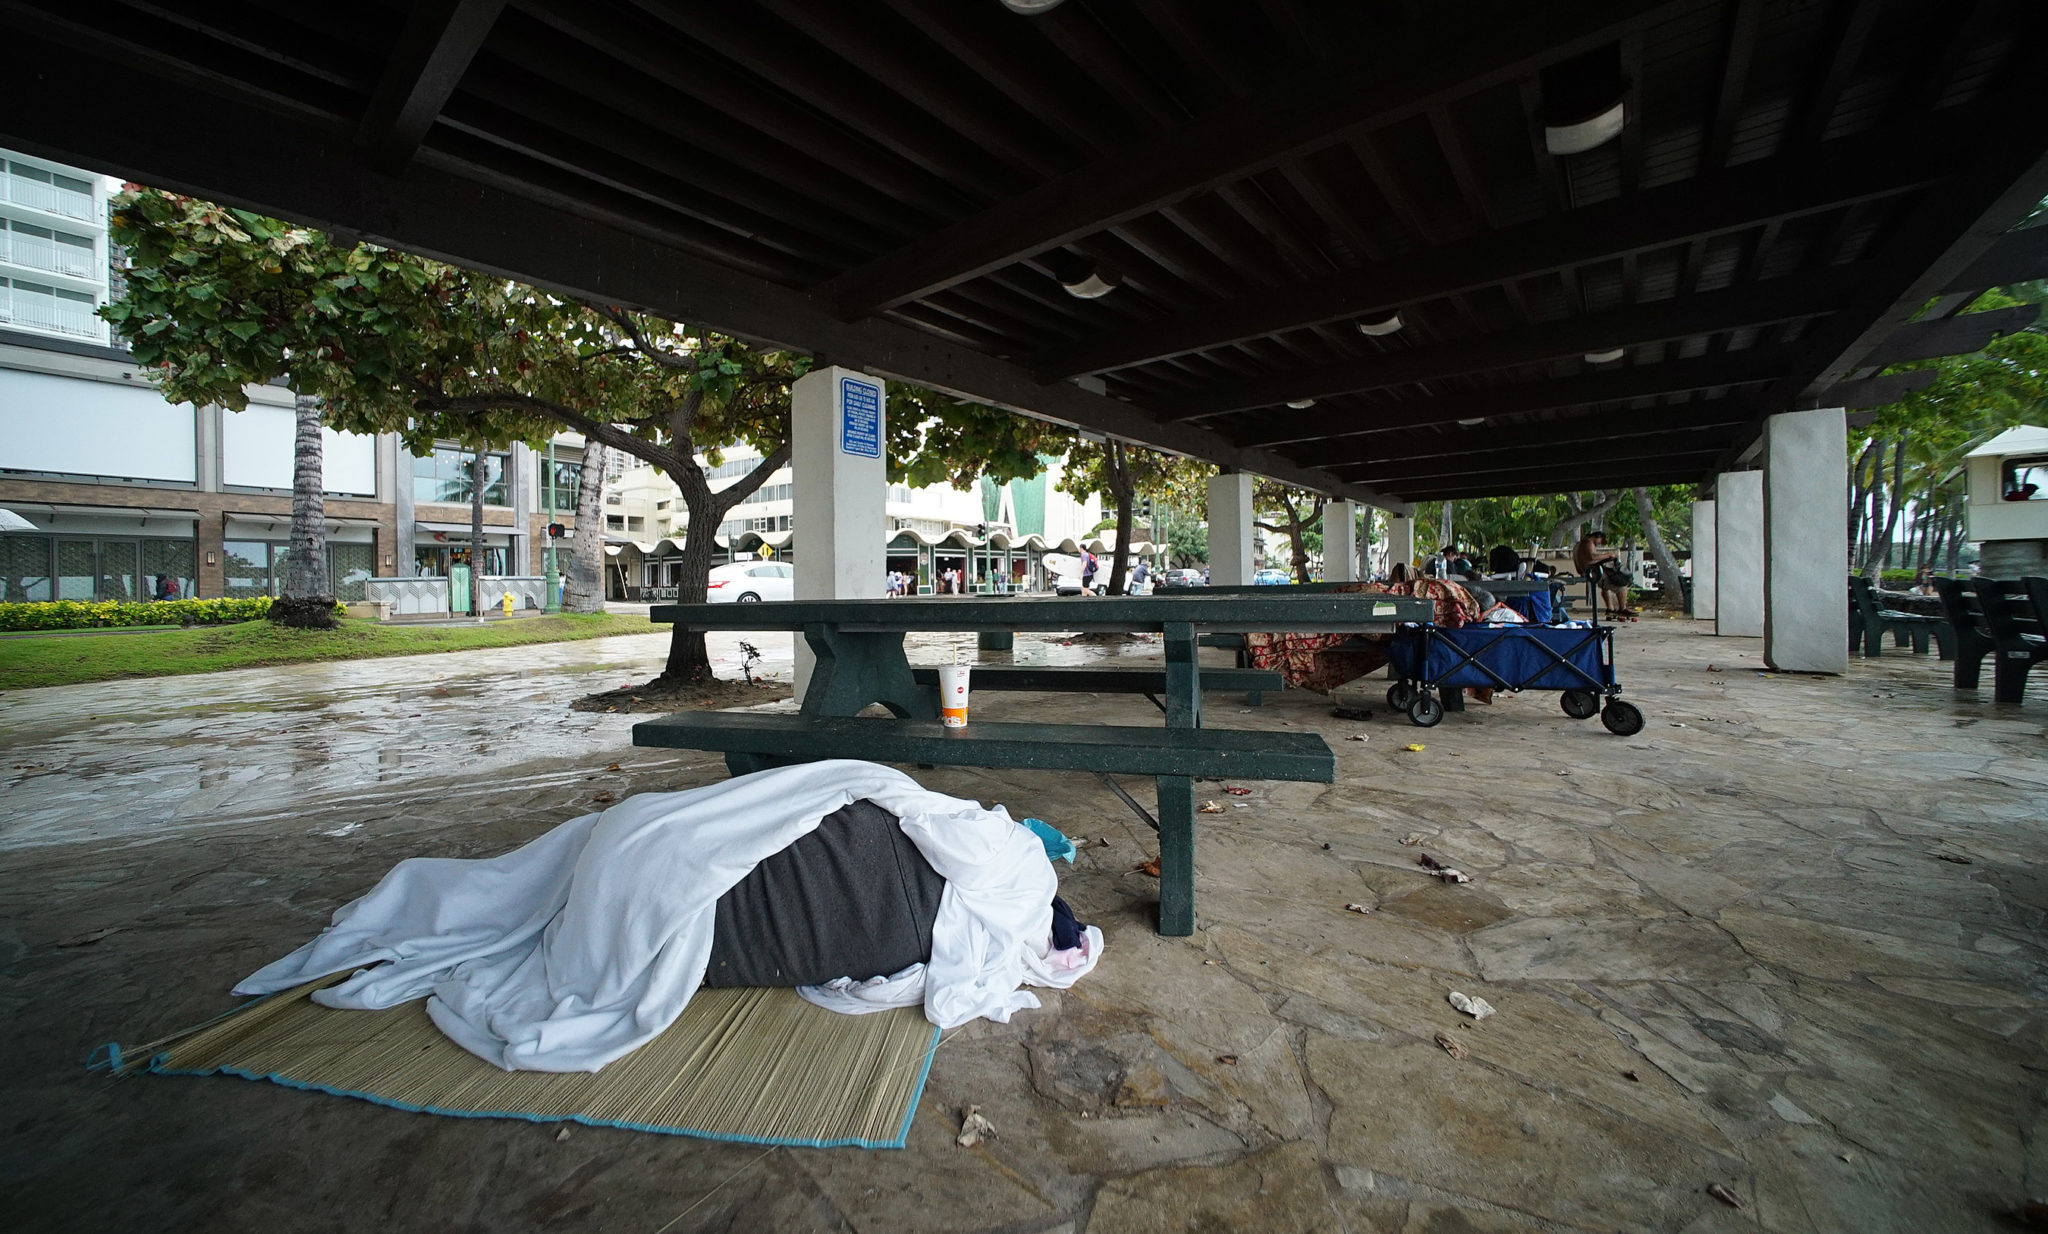 Kalakaua Avenue covered pavillions with sleeping person on mat near Lifeguard tower 2C.